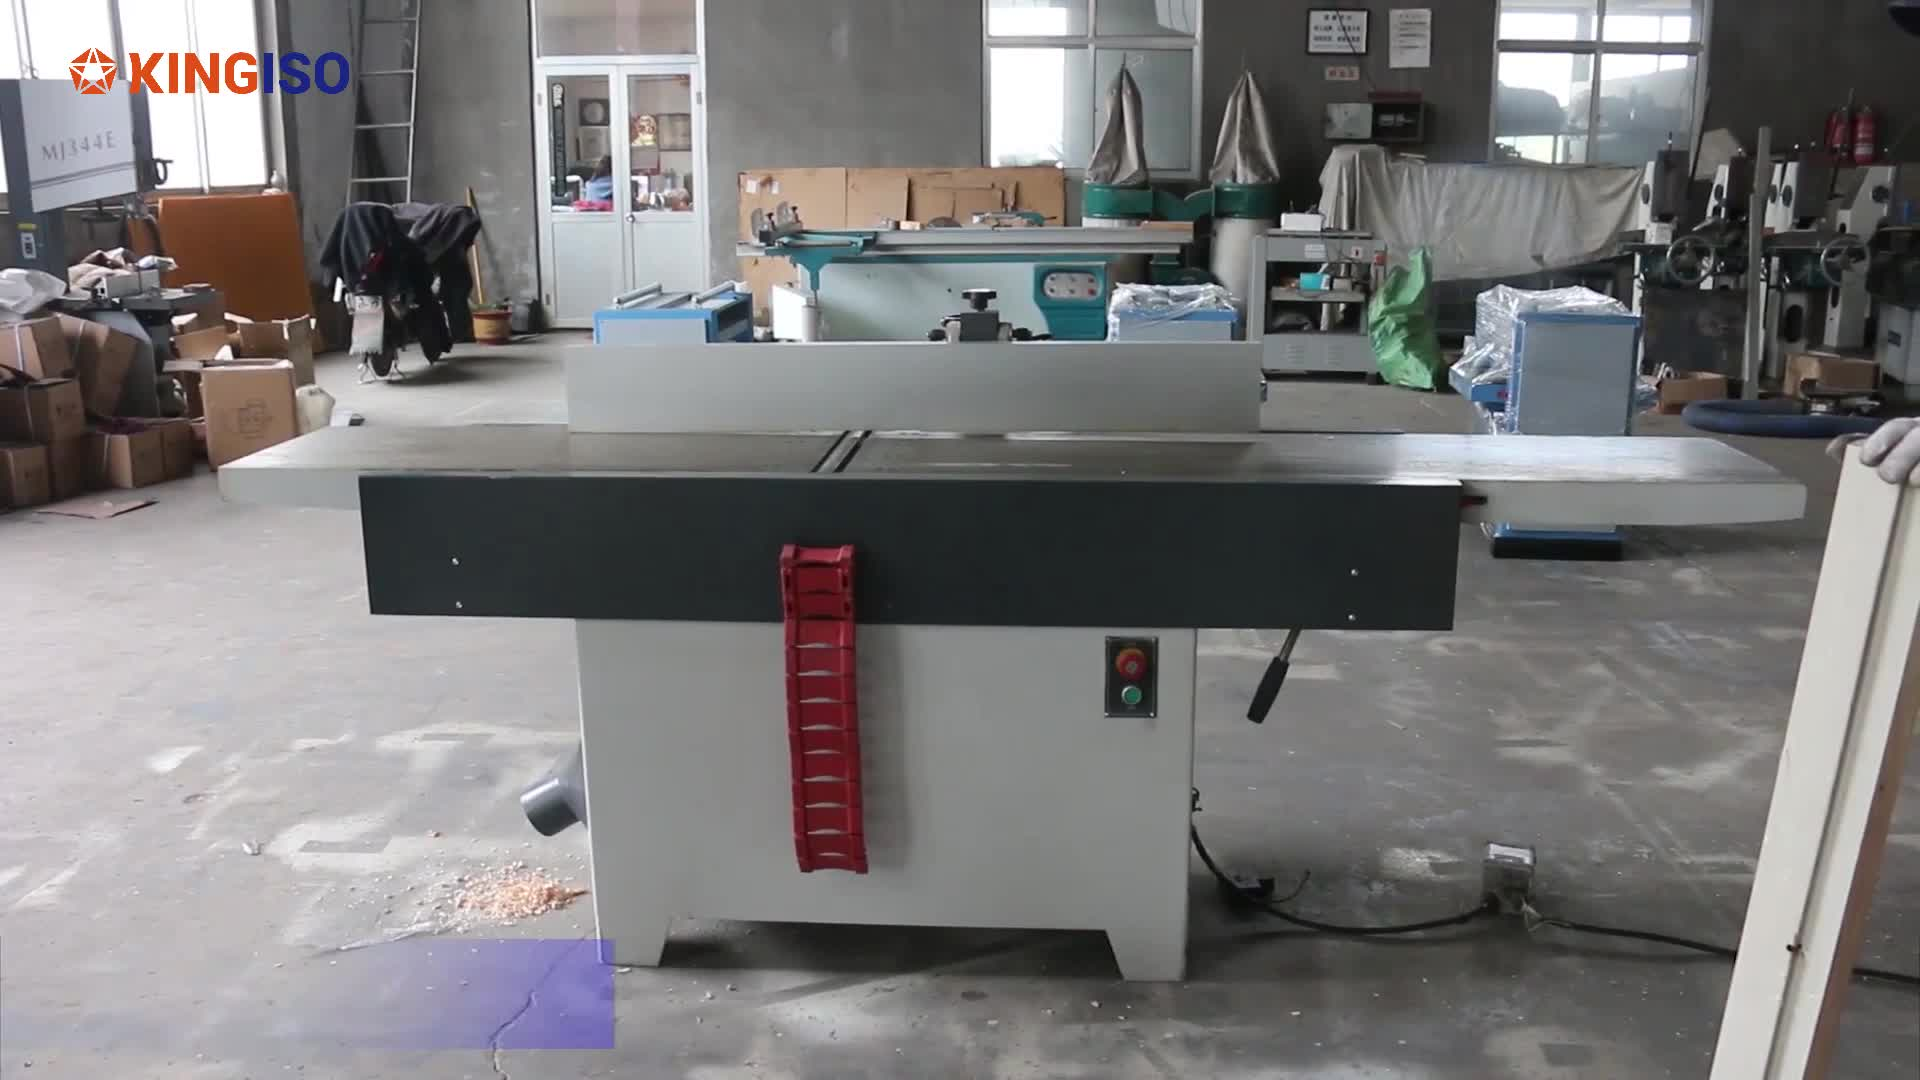 MB503/MB504/MB505 woodworking jointer and planer